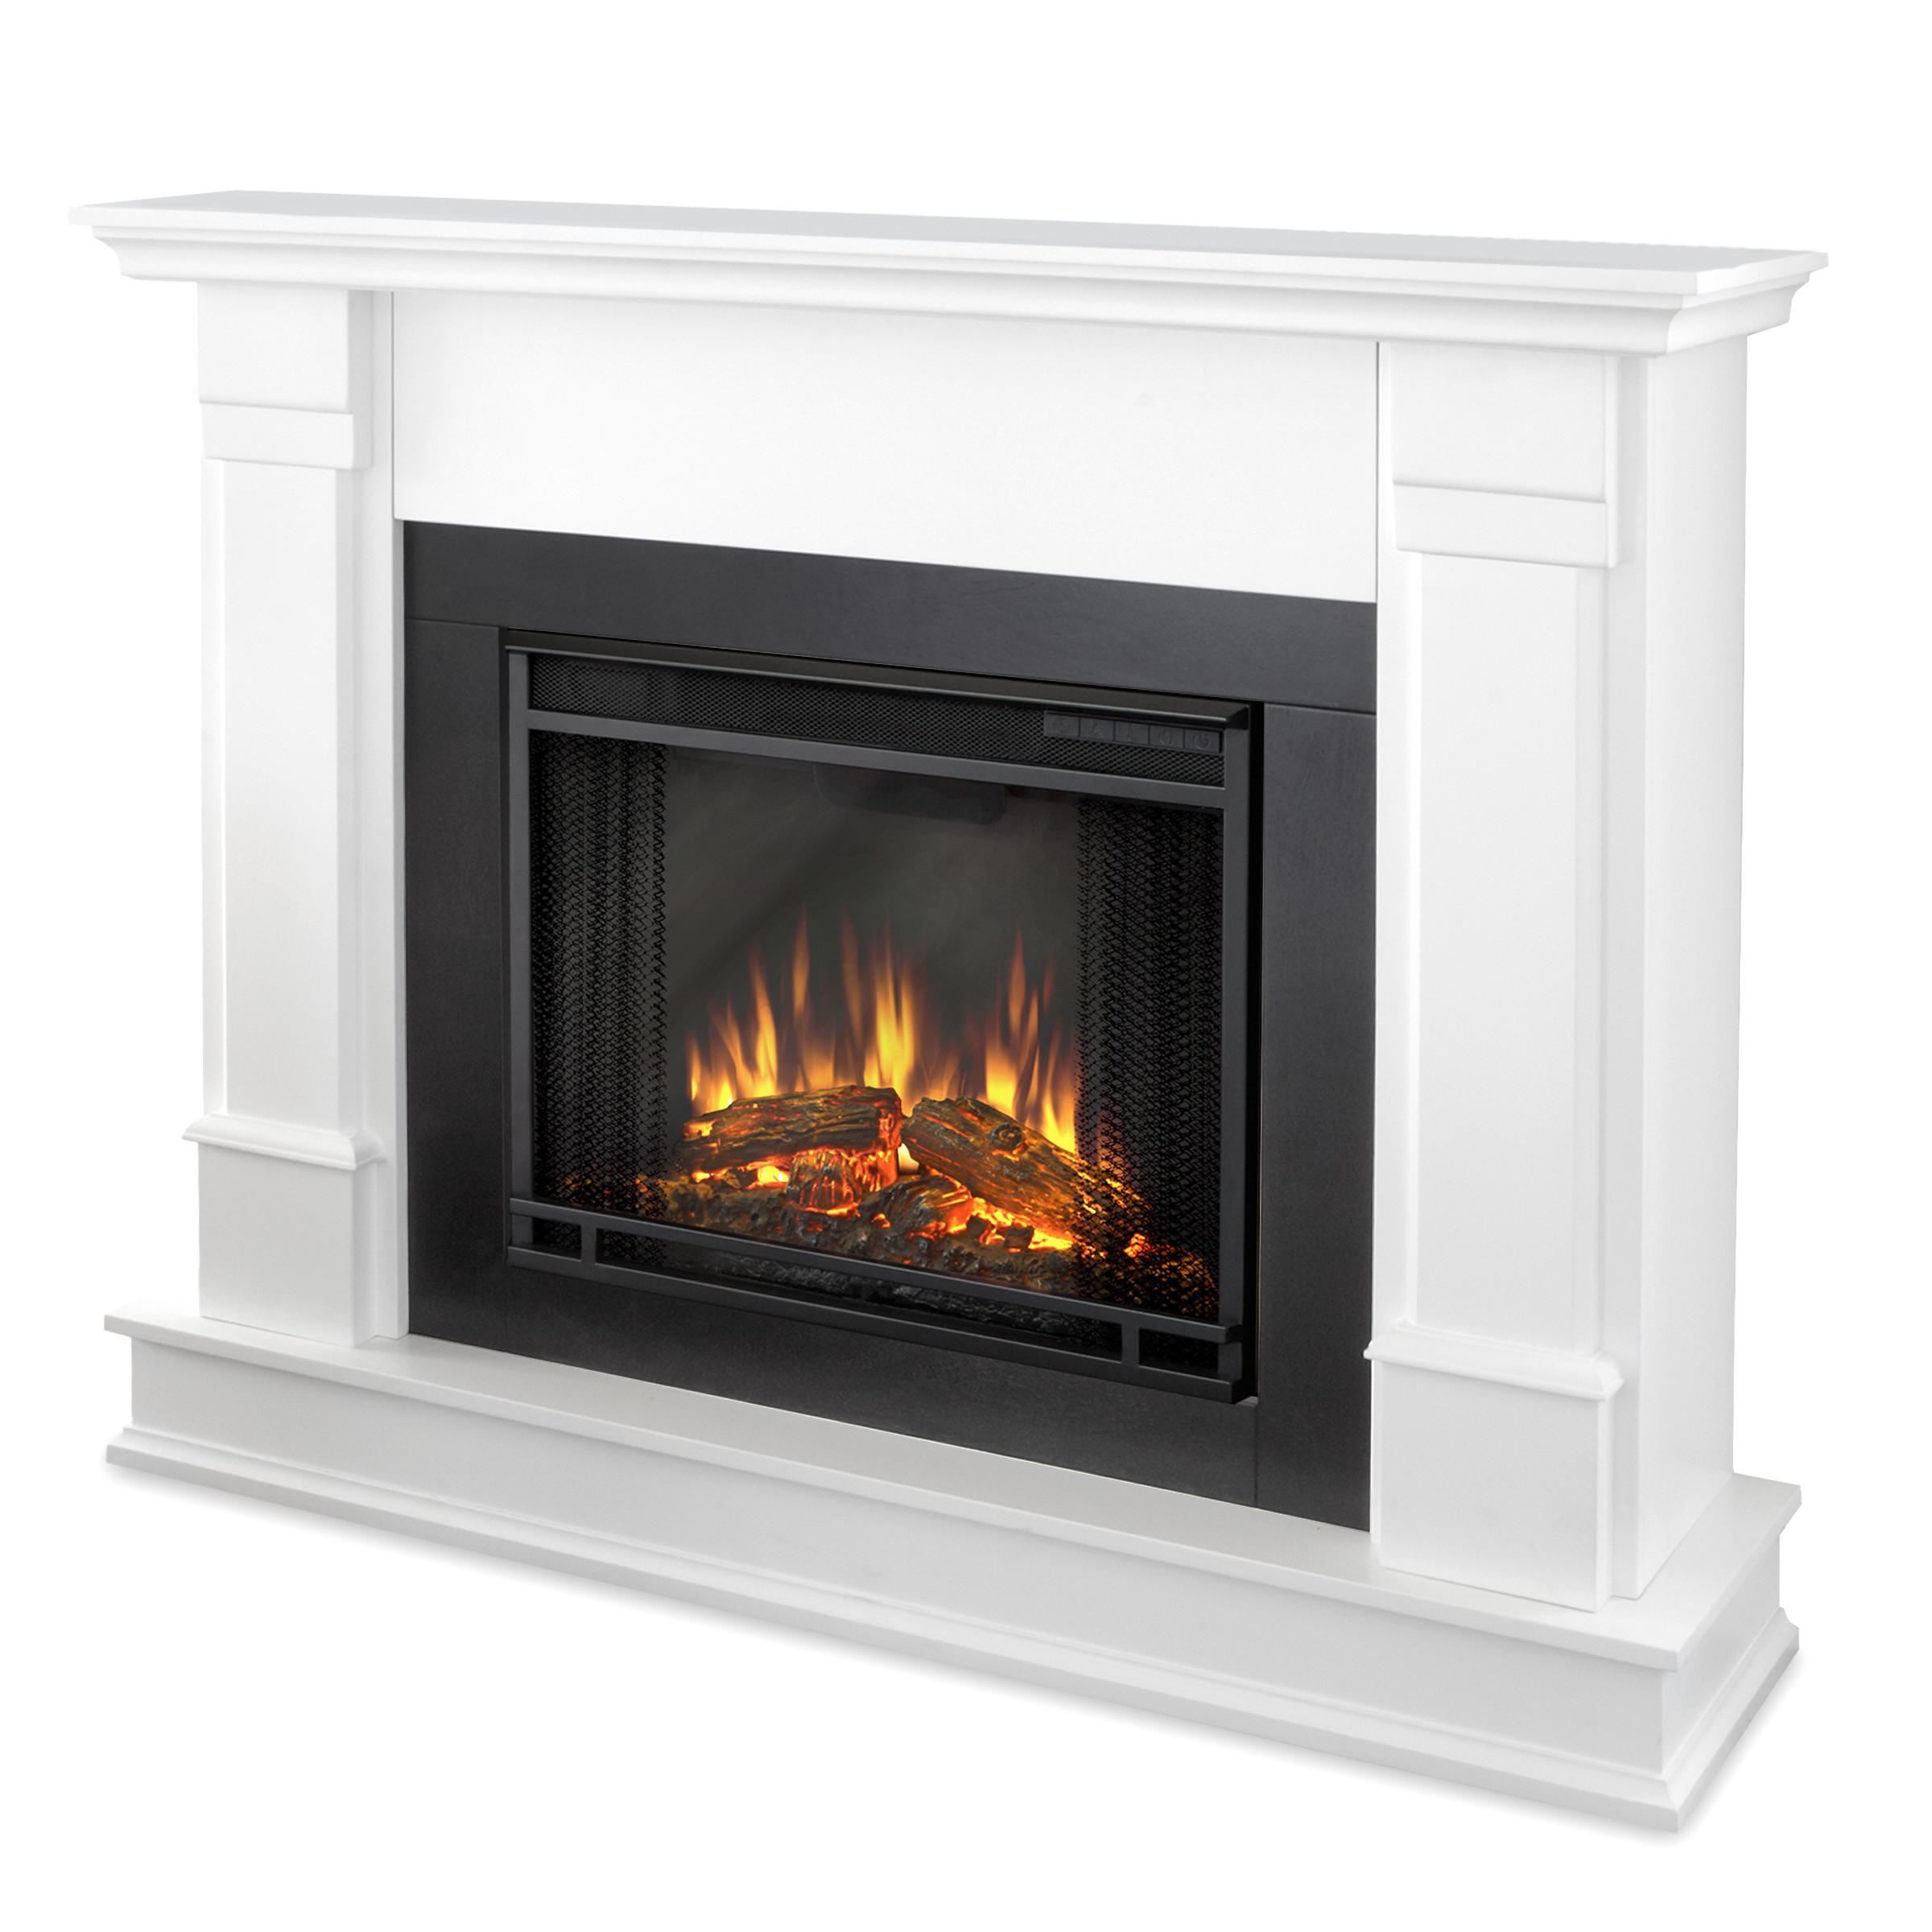 Best ideas about Real Flame Fireplace . Save or Pin Real Flame Silverton Electric Fireplace & Reviews Now.